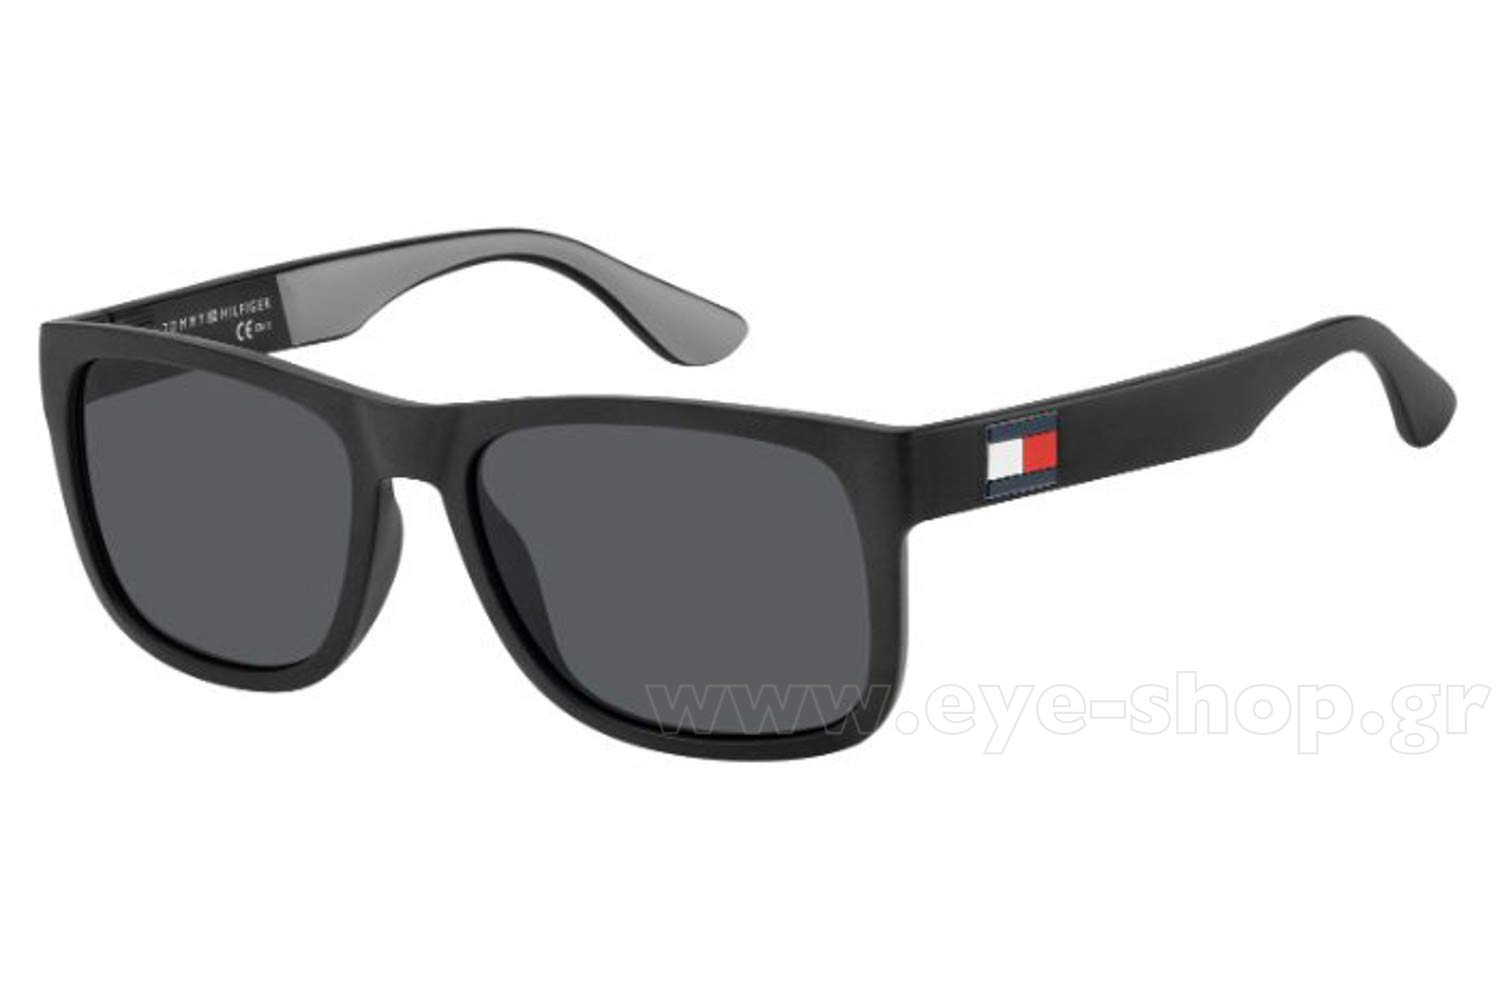 Γυαλιά Tommy Hilfiger TH 1556 S 08A (IR)